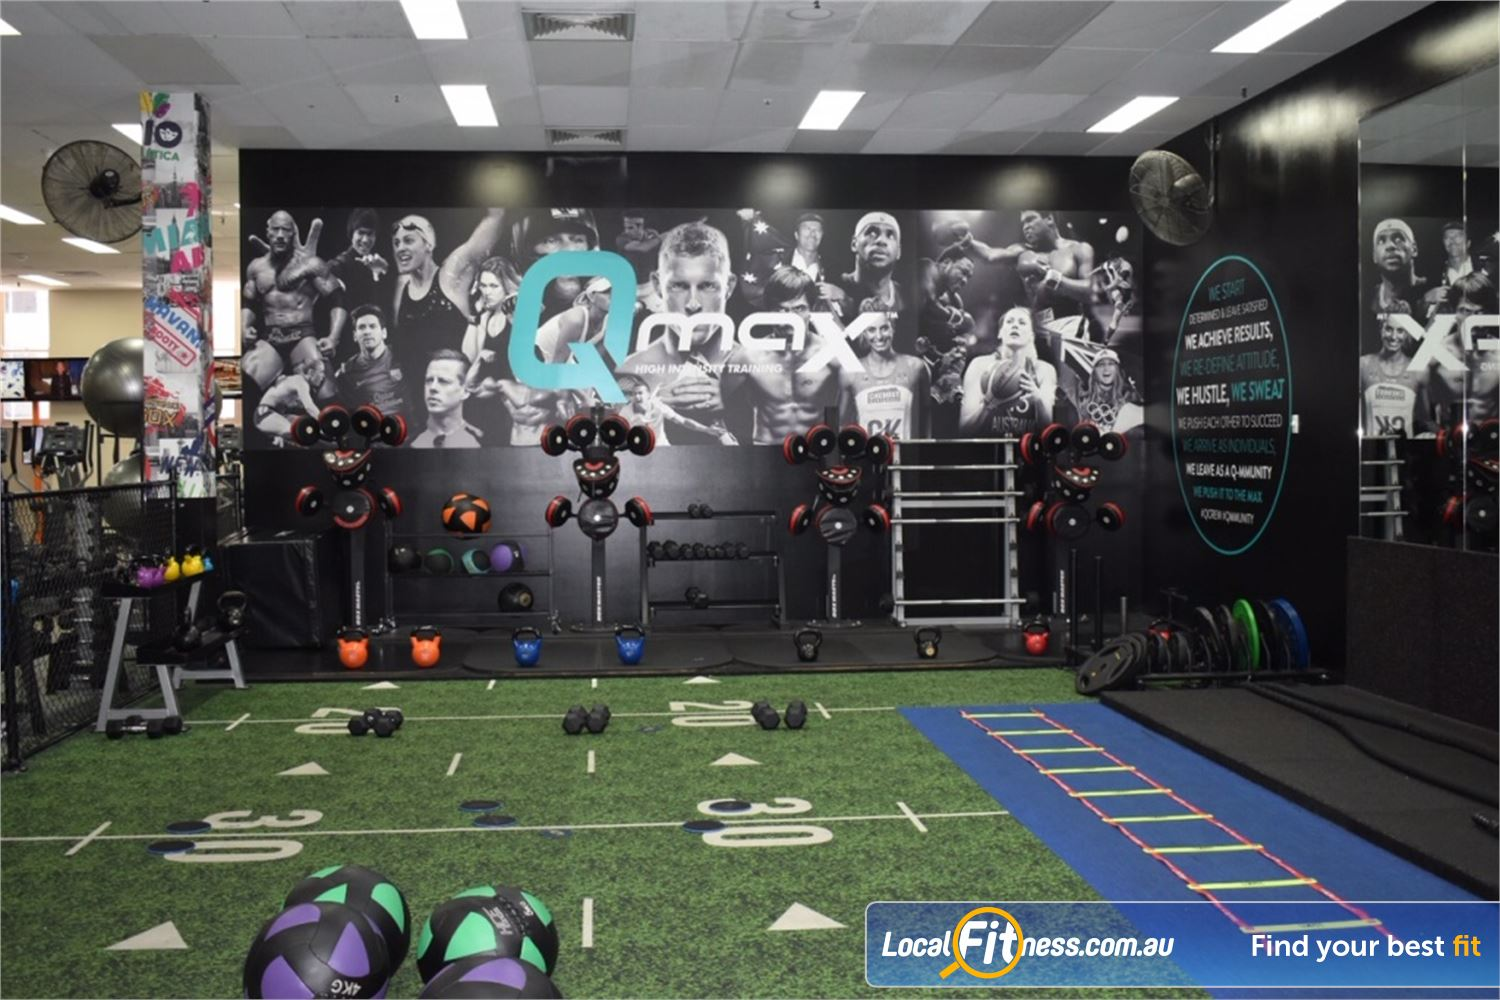 Fit n Fast Sydney Fully equipped Sydney functional training area.